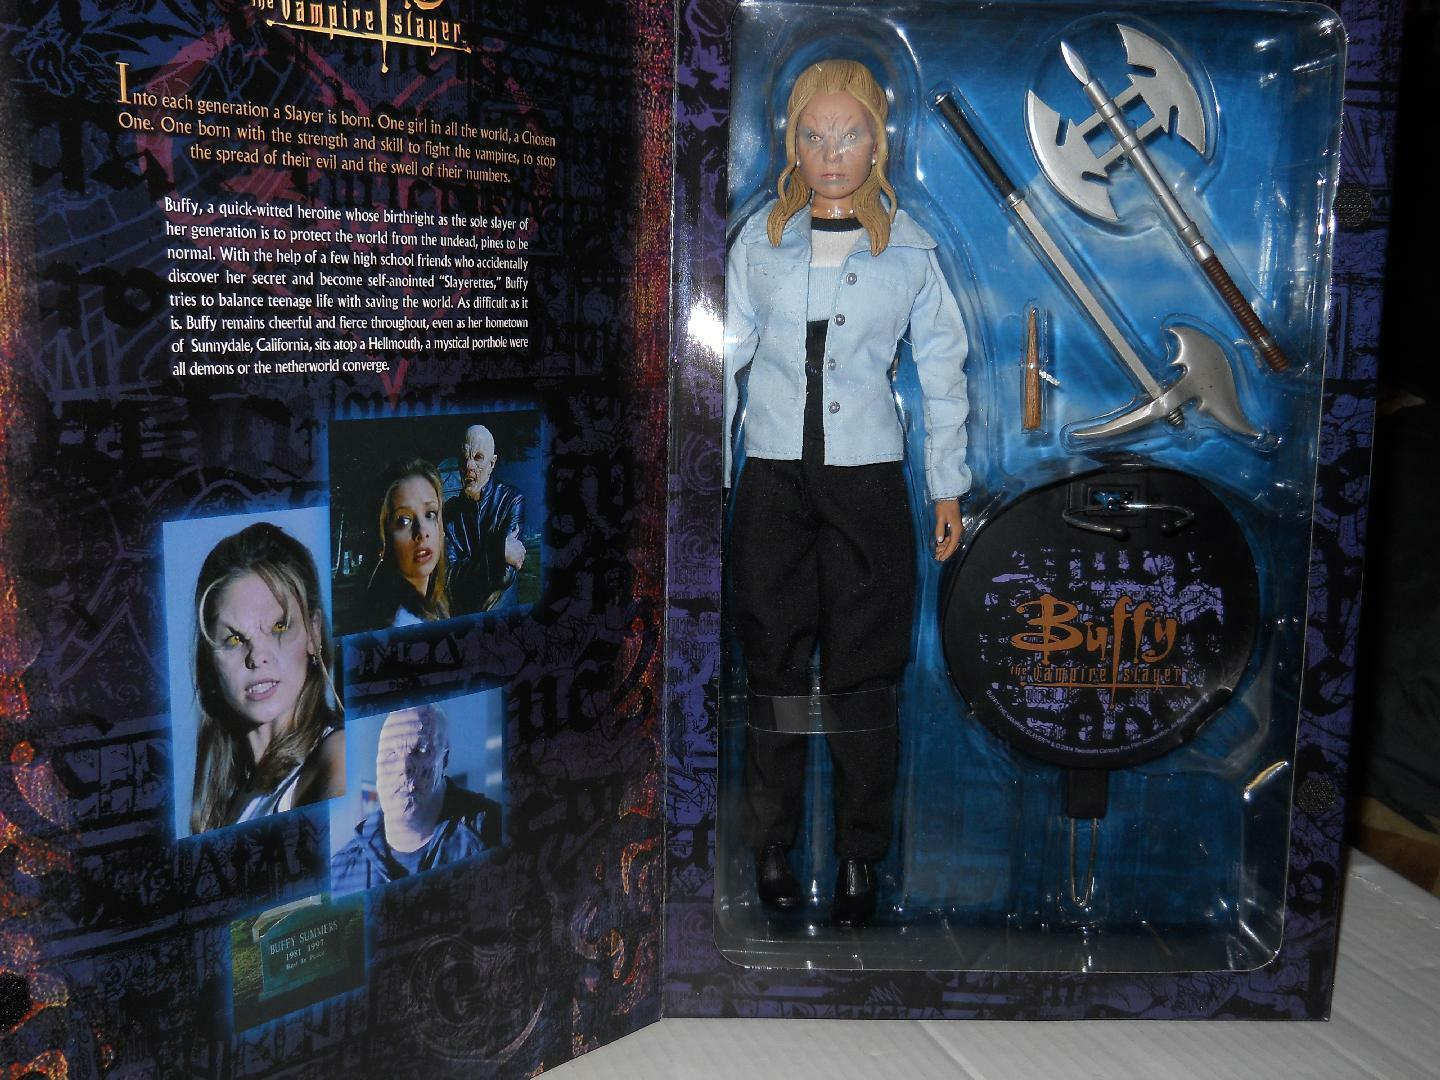 1 6 Sideshow Toys Buffy the Vampire Slayer BTVS BTVS BTVS Vampire Buffy MIB Extra Weapons d97e5d